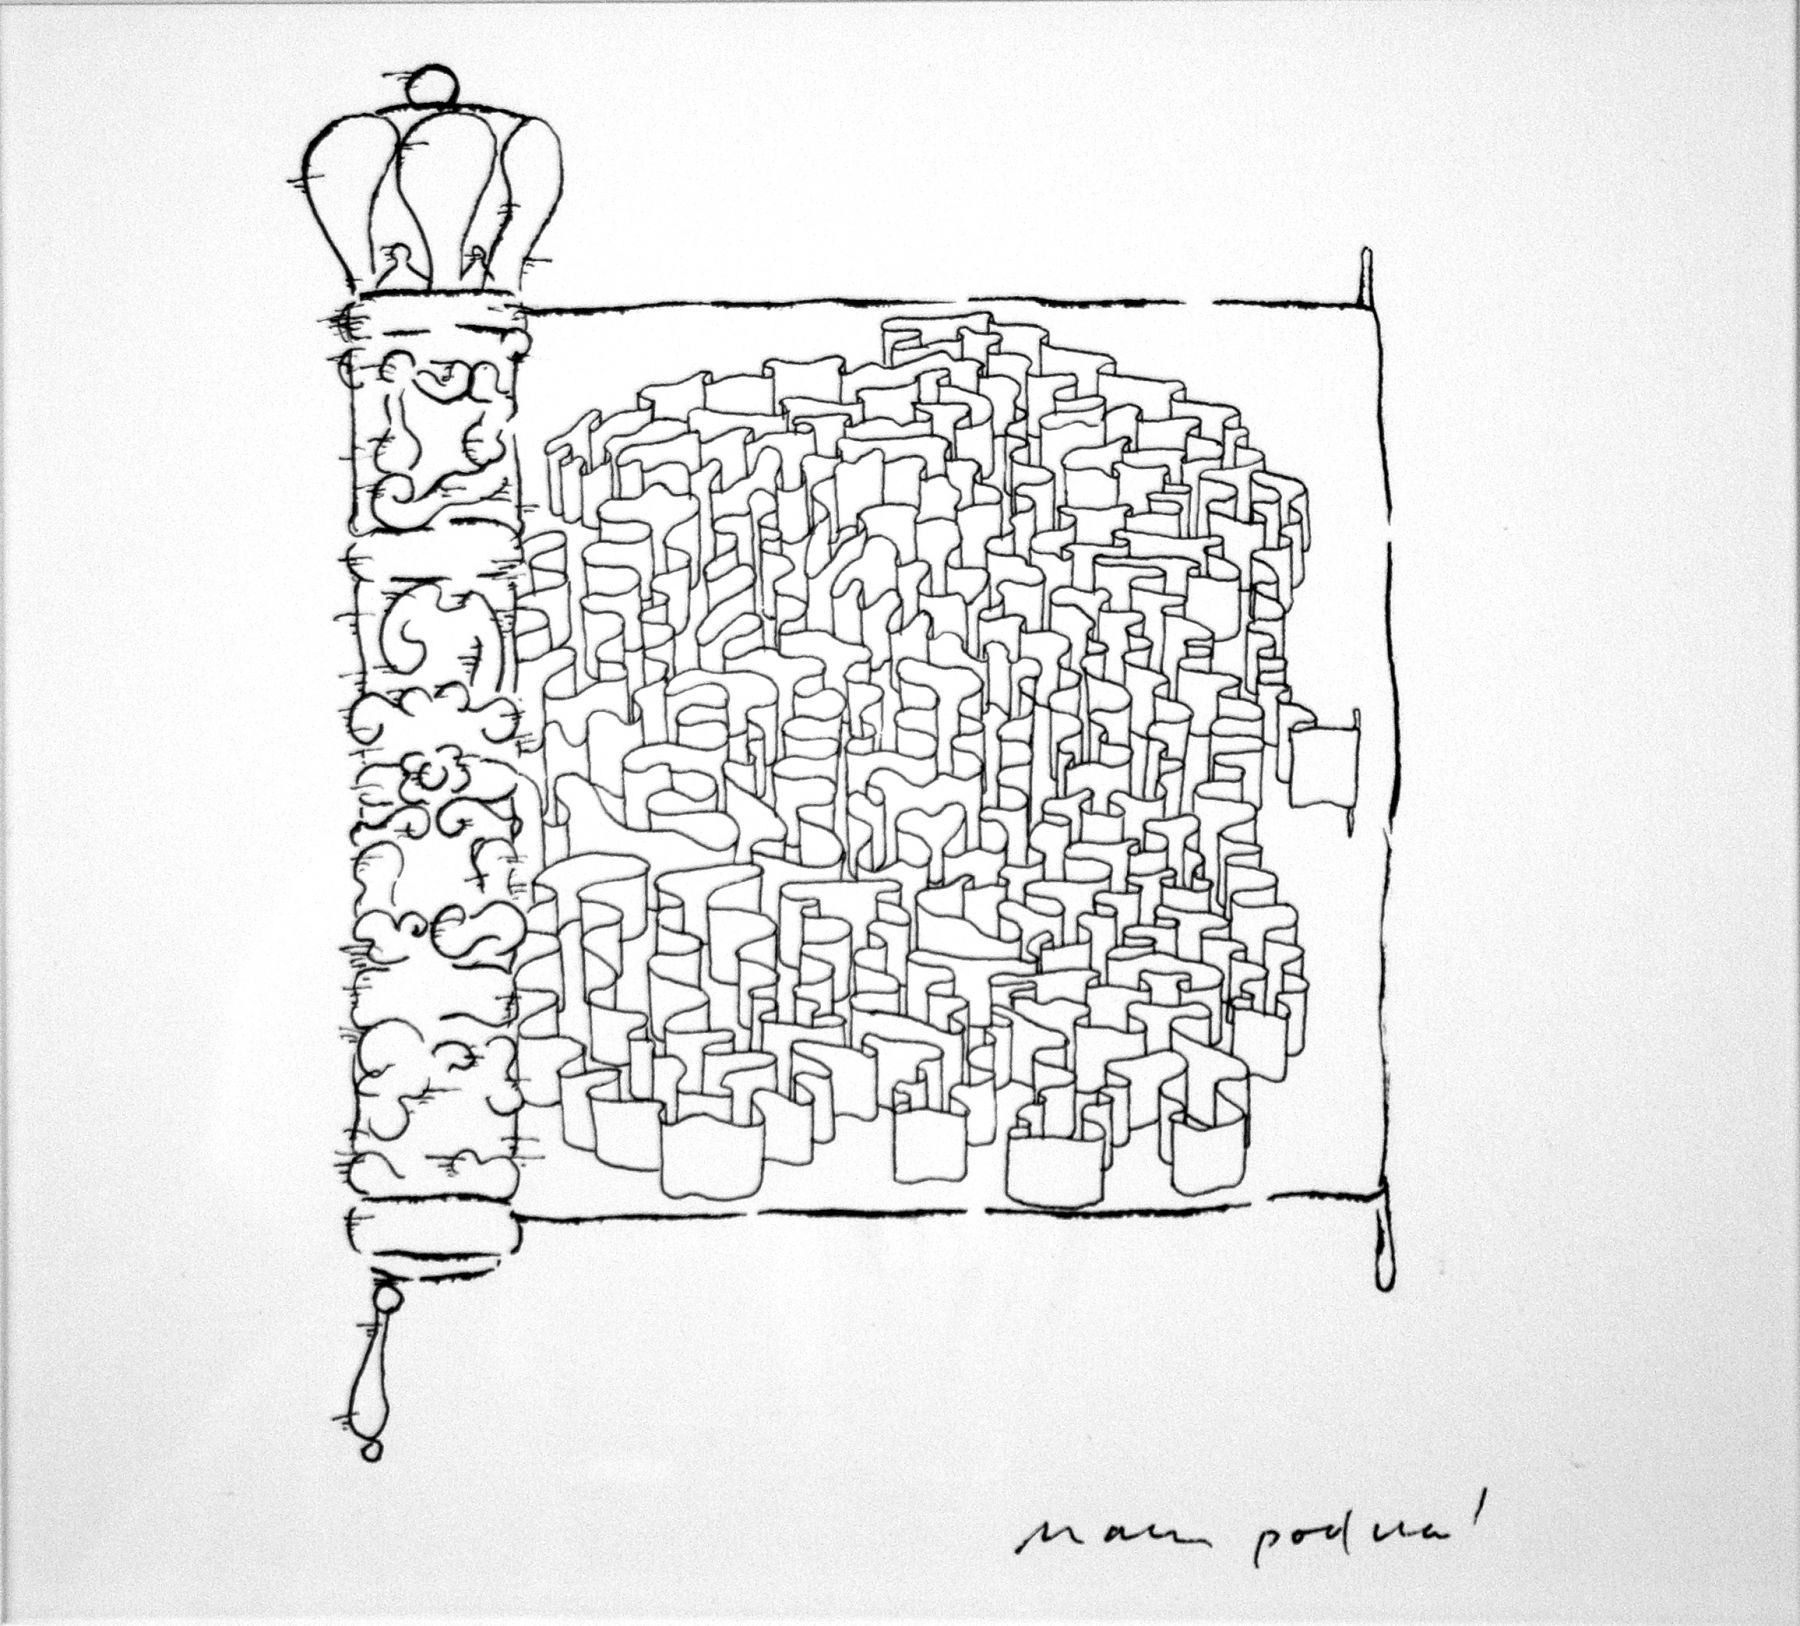 mark podwal, Megillah, 1998, ink drawing, 7 x 5 1/2 inches